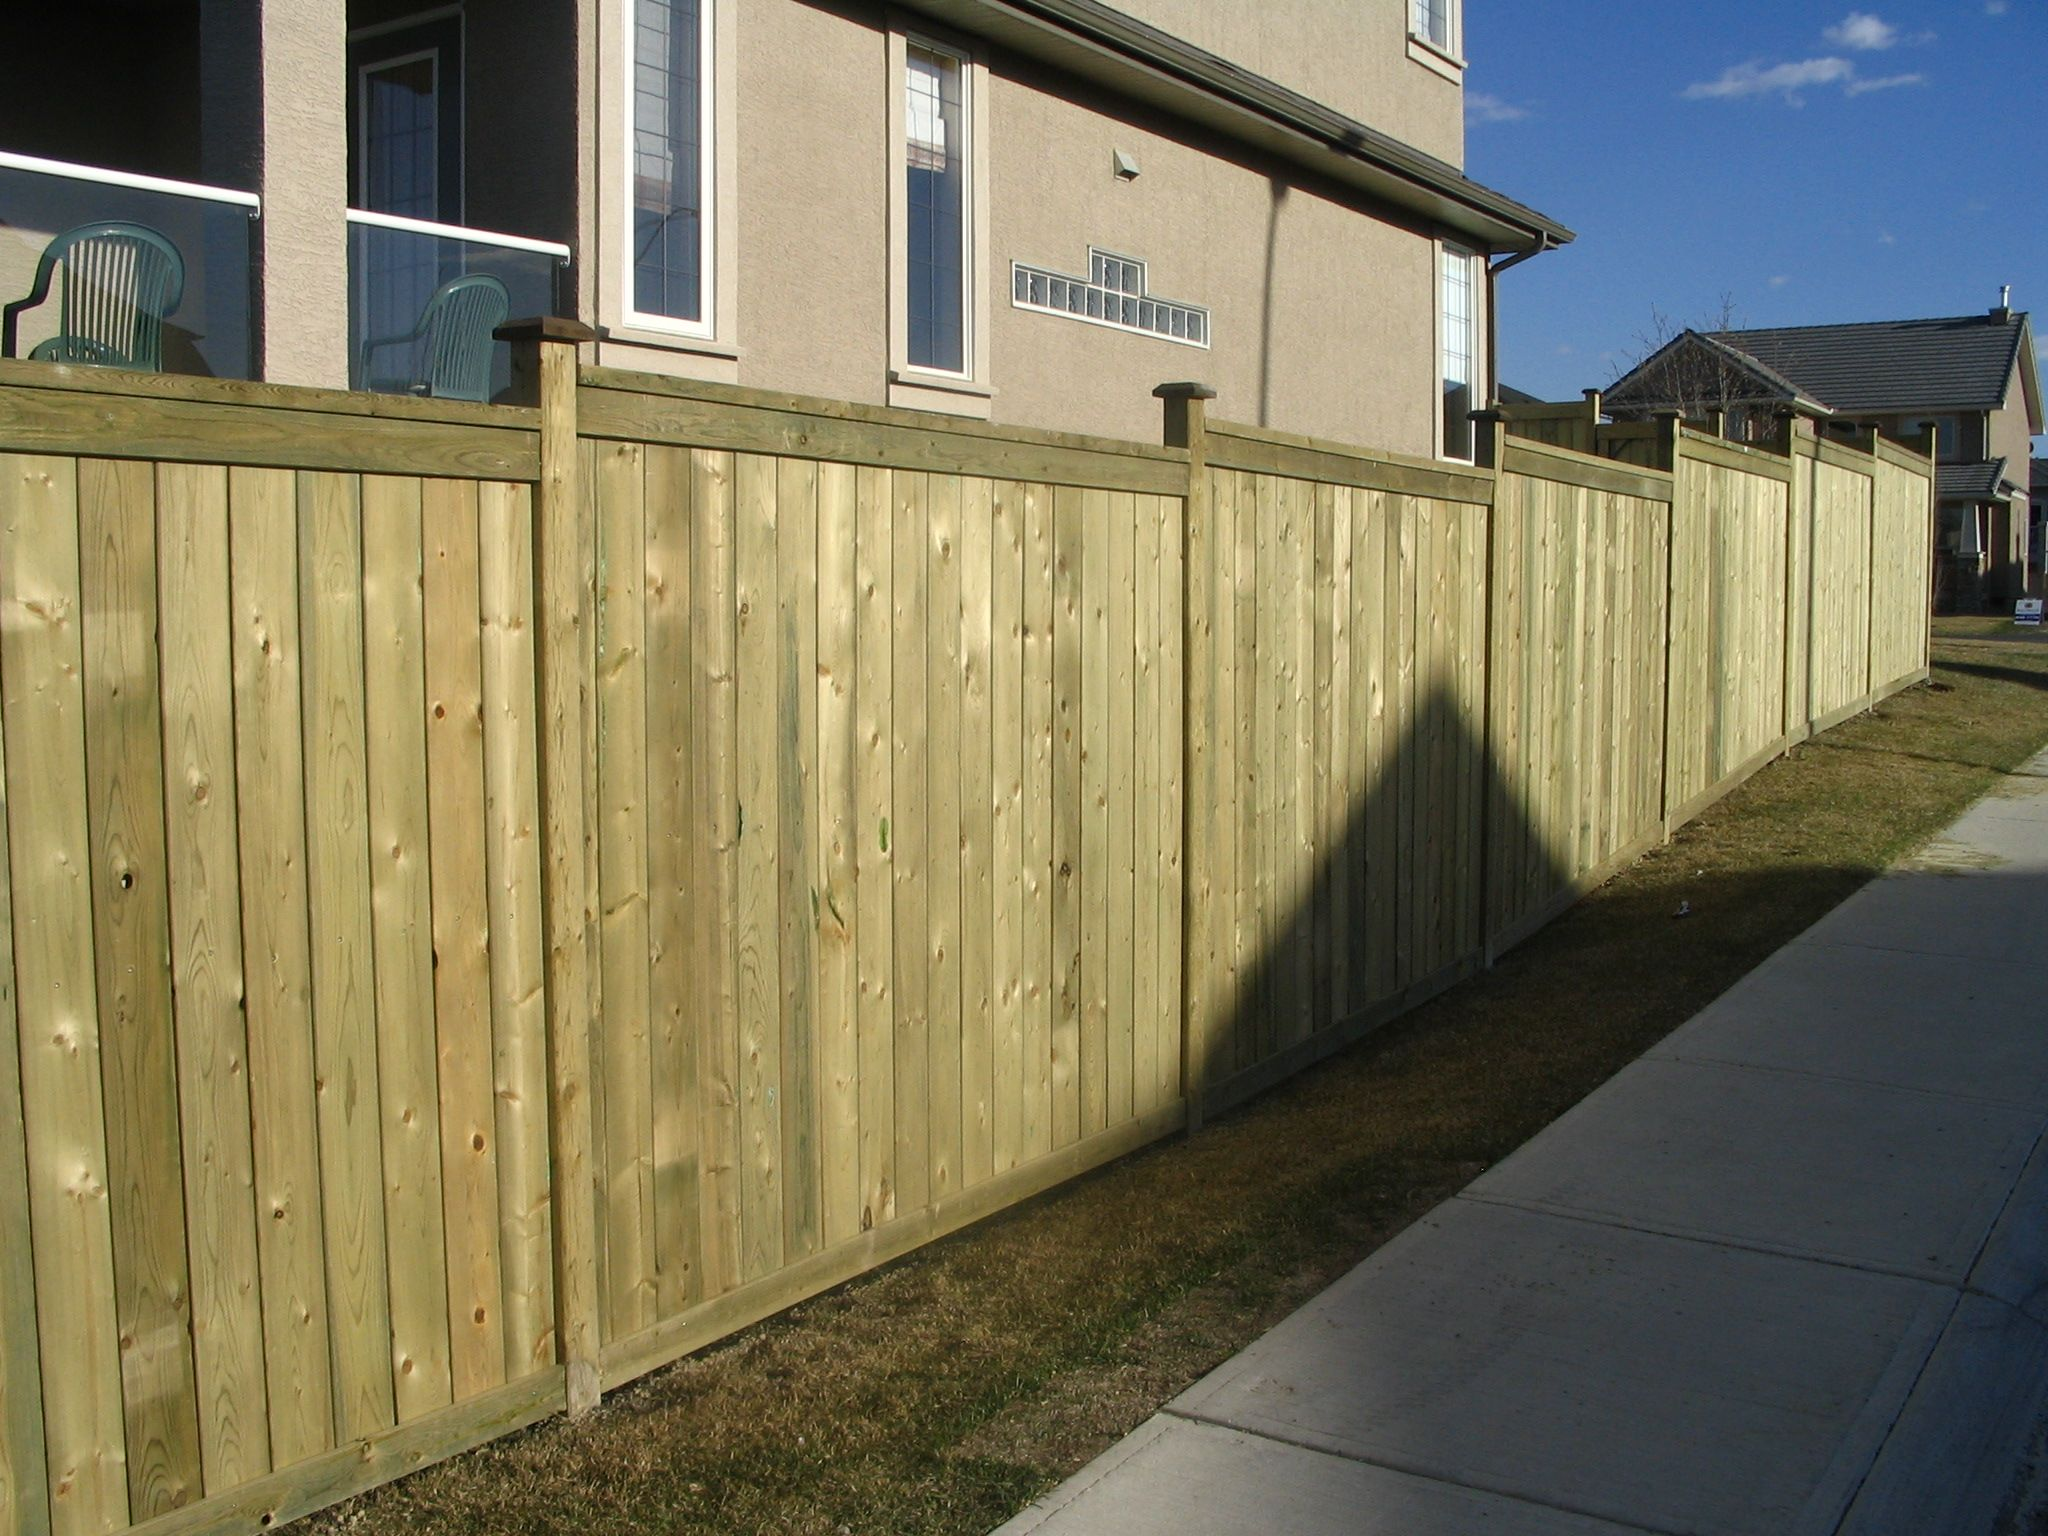 Pin by CREATE ESCAPE on Fencing | Pinterest | Fences